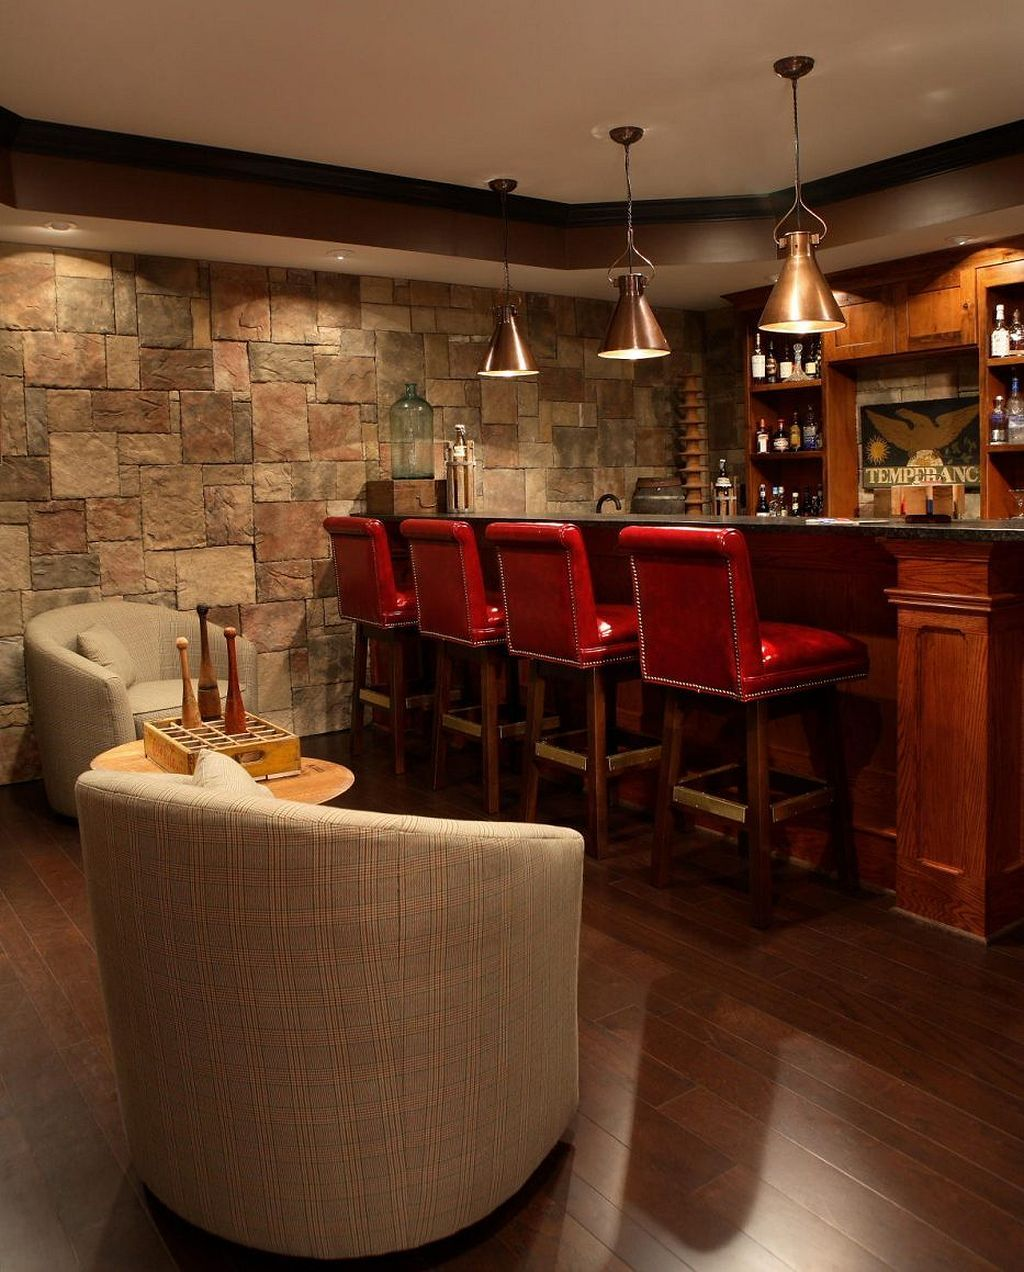 15 incredible man cave decorating ideas for manly craft on incredible man cave basement decorating ideas id=28719